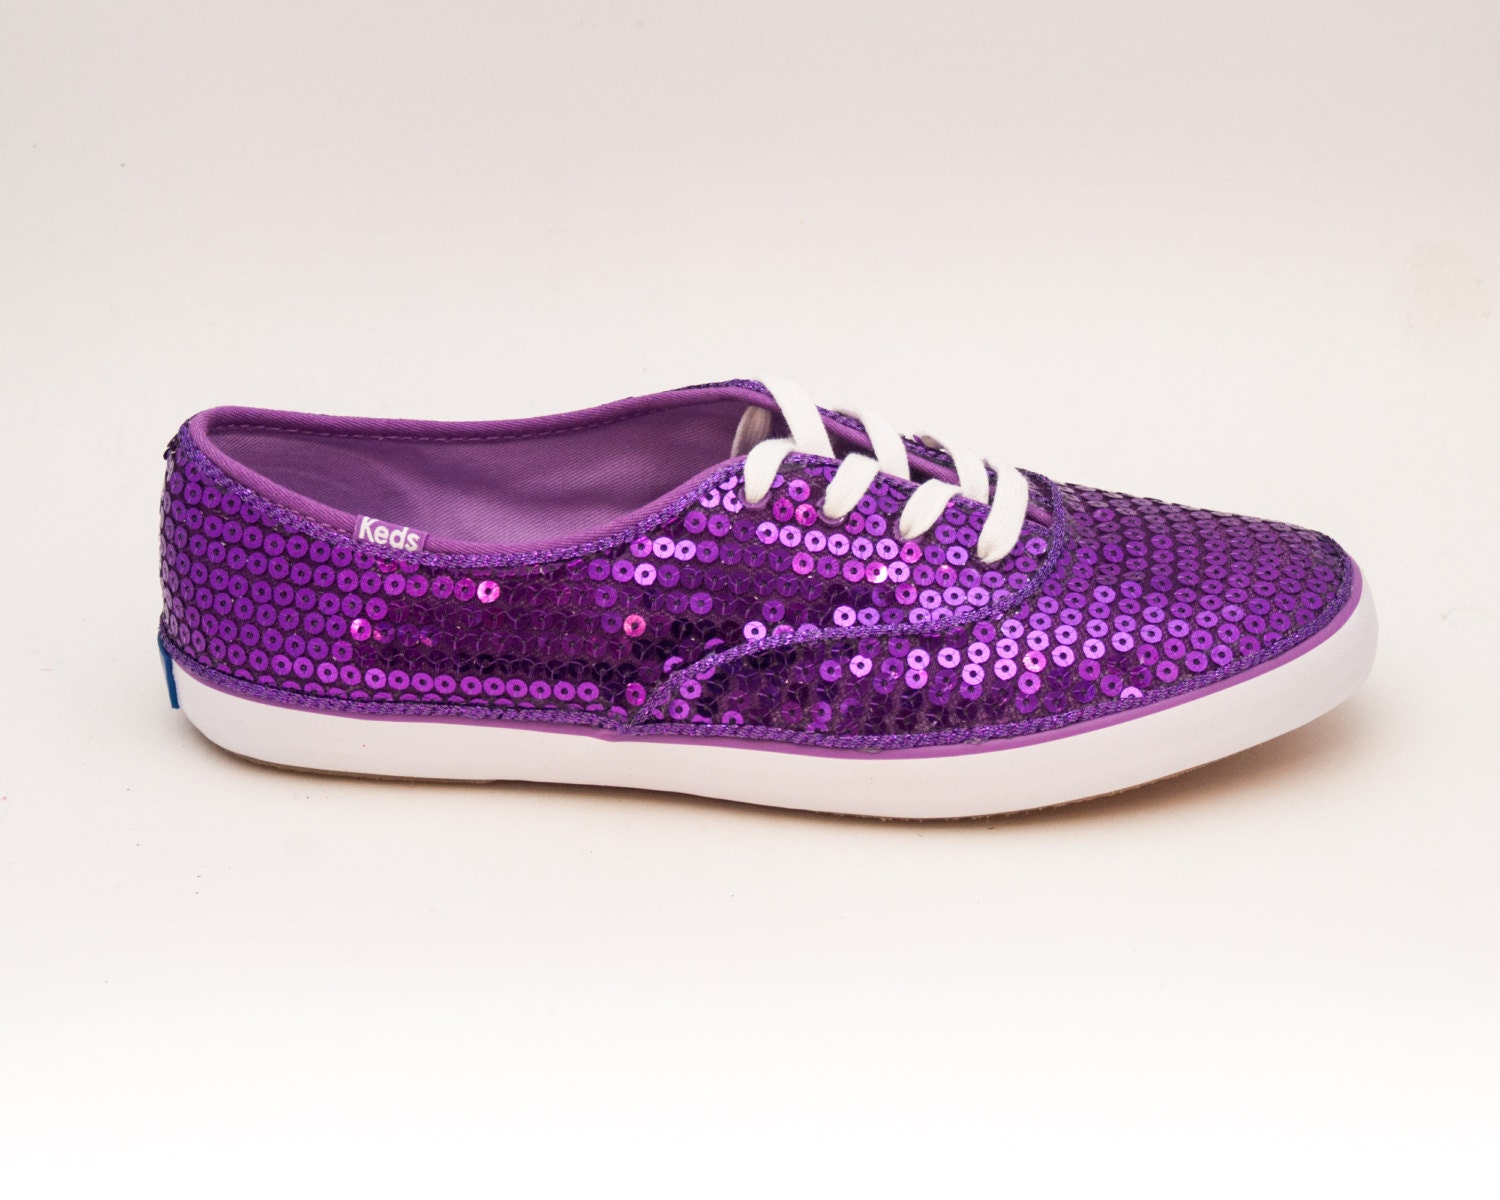 Shop for sequin tennis shoes online at Target. Free shipping on purchases over $35 and save 5% every day with your Target REDcard.